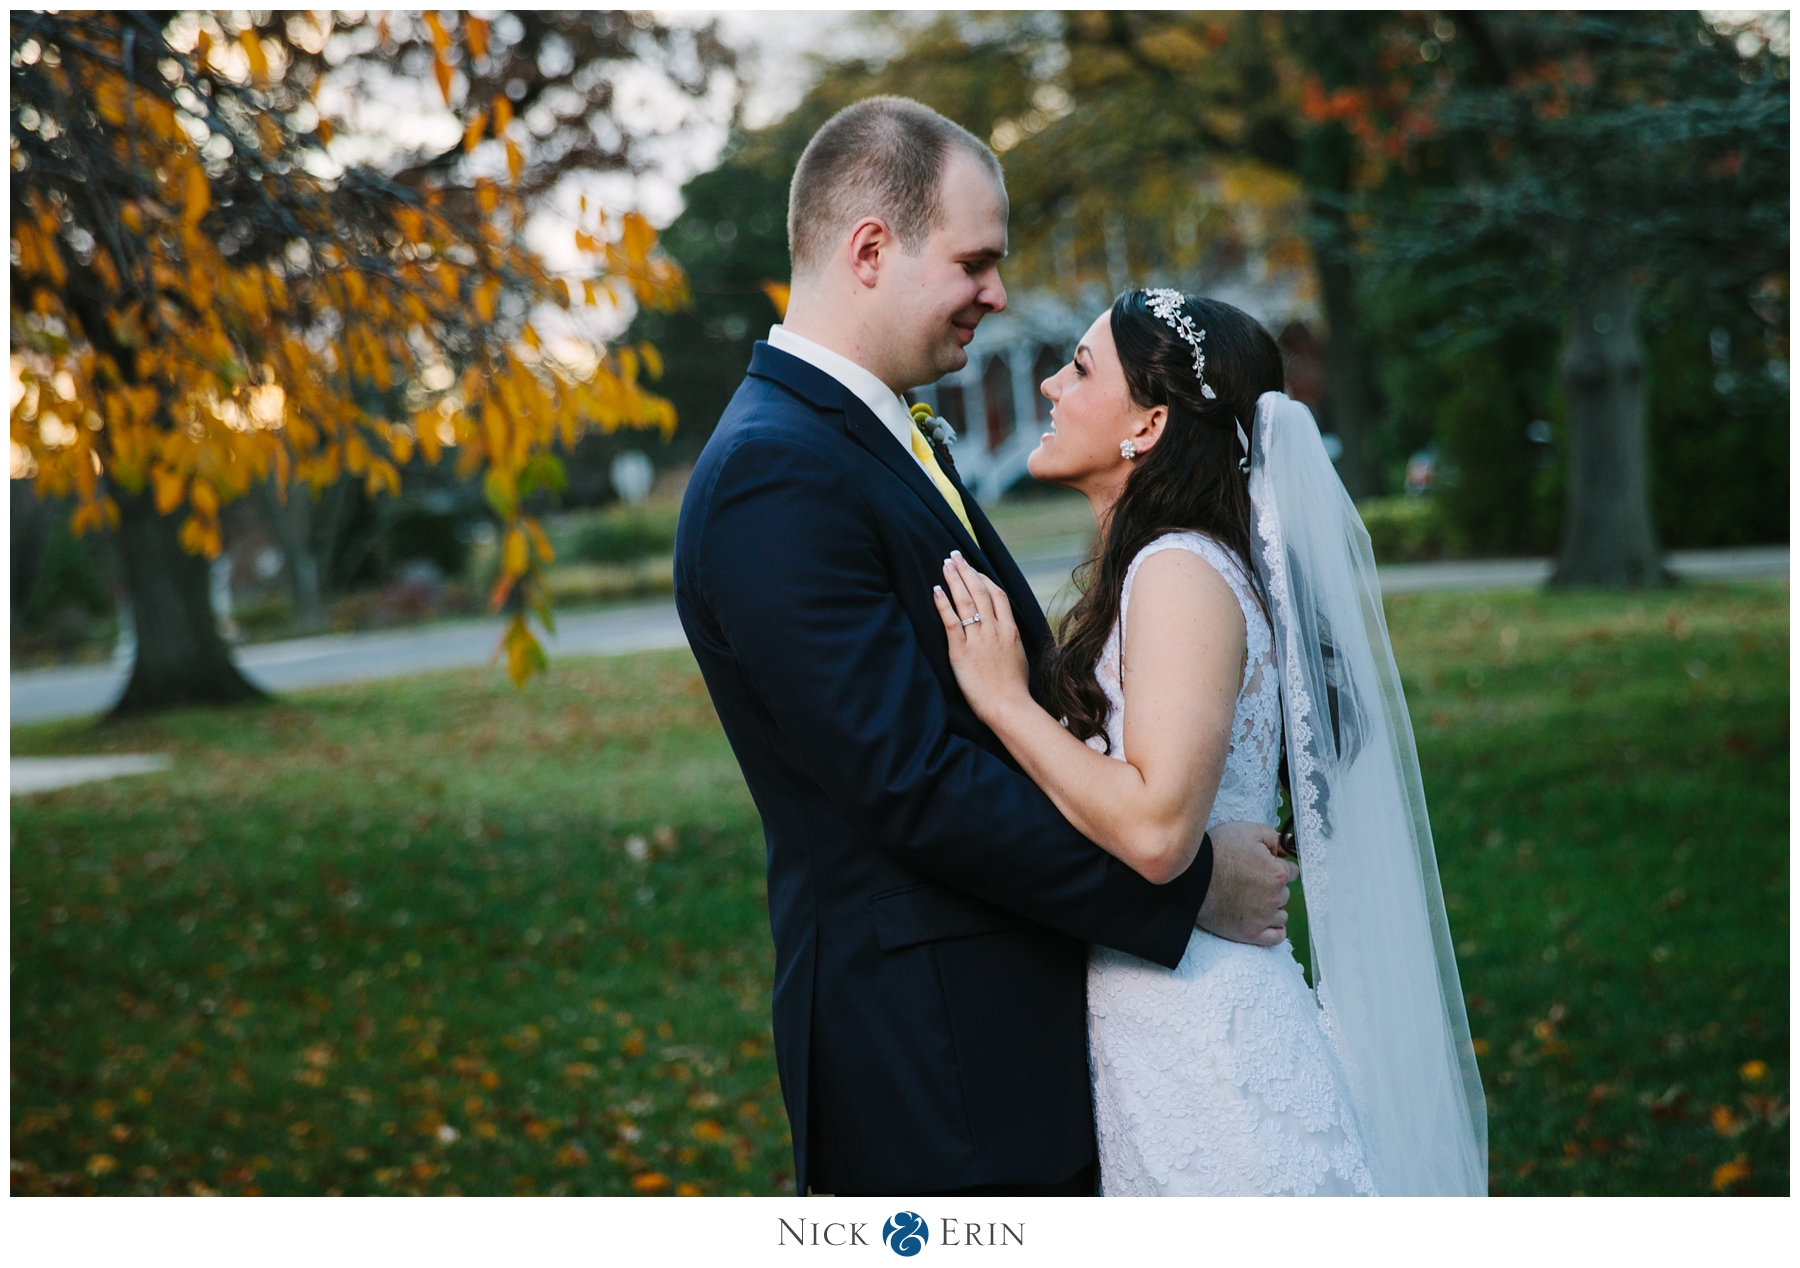 Donner_Photography_Fort Myer Wedding_Katie & Will_0039